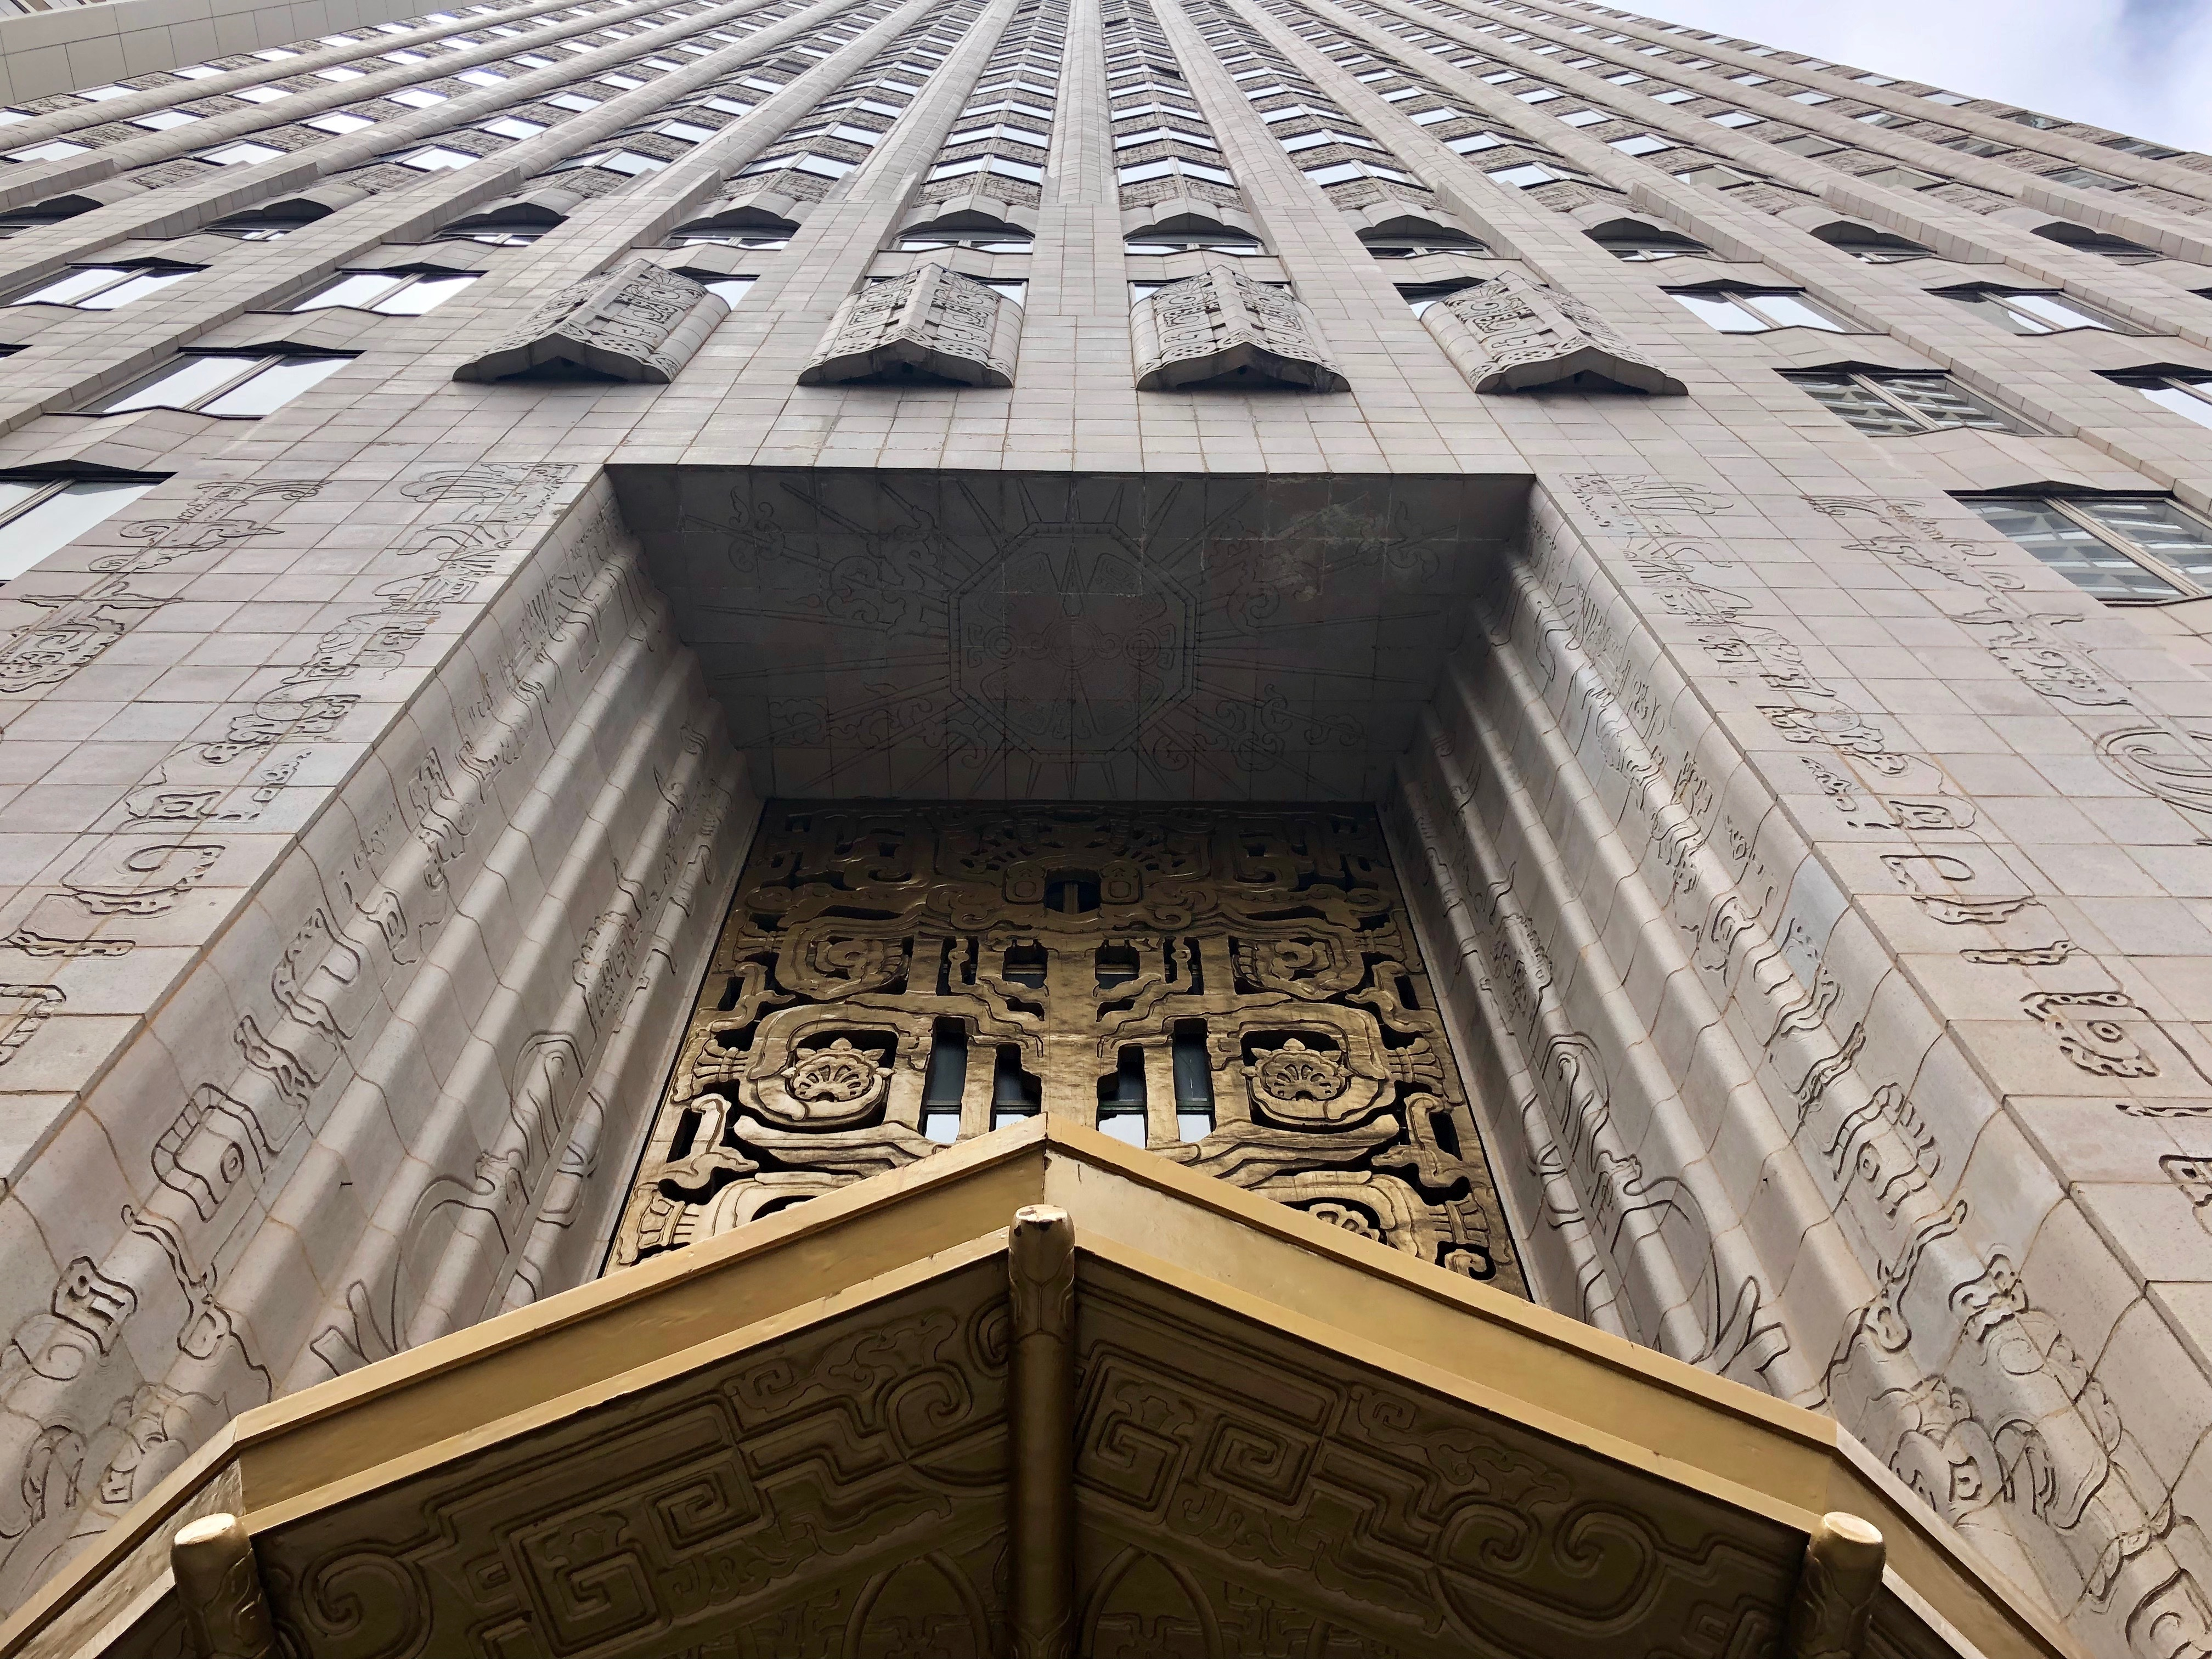 450 Sutter, iconic Neo-Mayan skyscraper where you get your teeth cleaned, turns 90 today